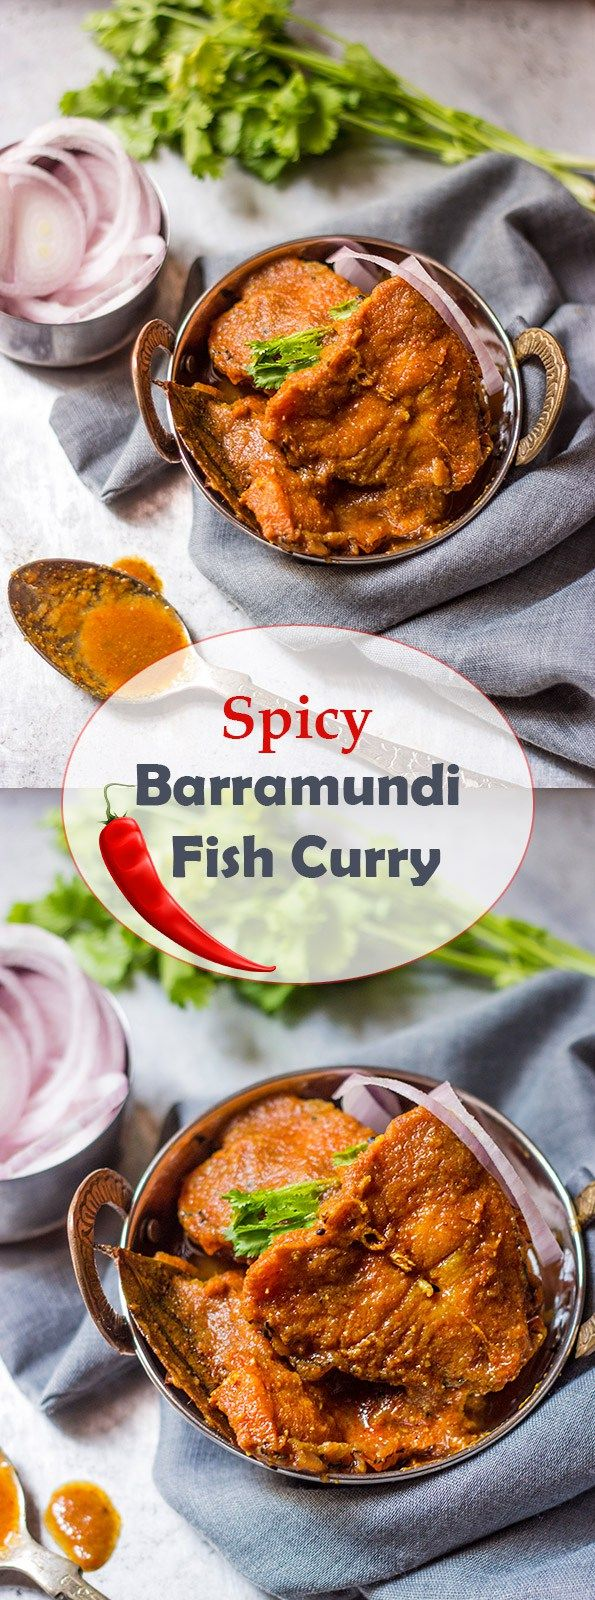 Spicy Barramundi Fish Curry   Not Out of the Box